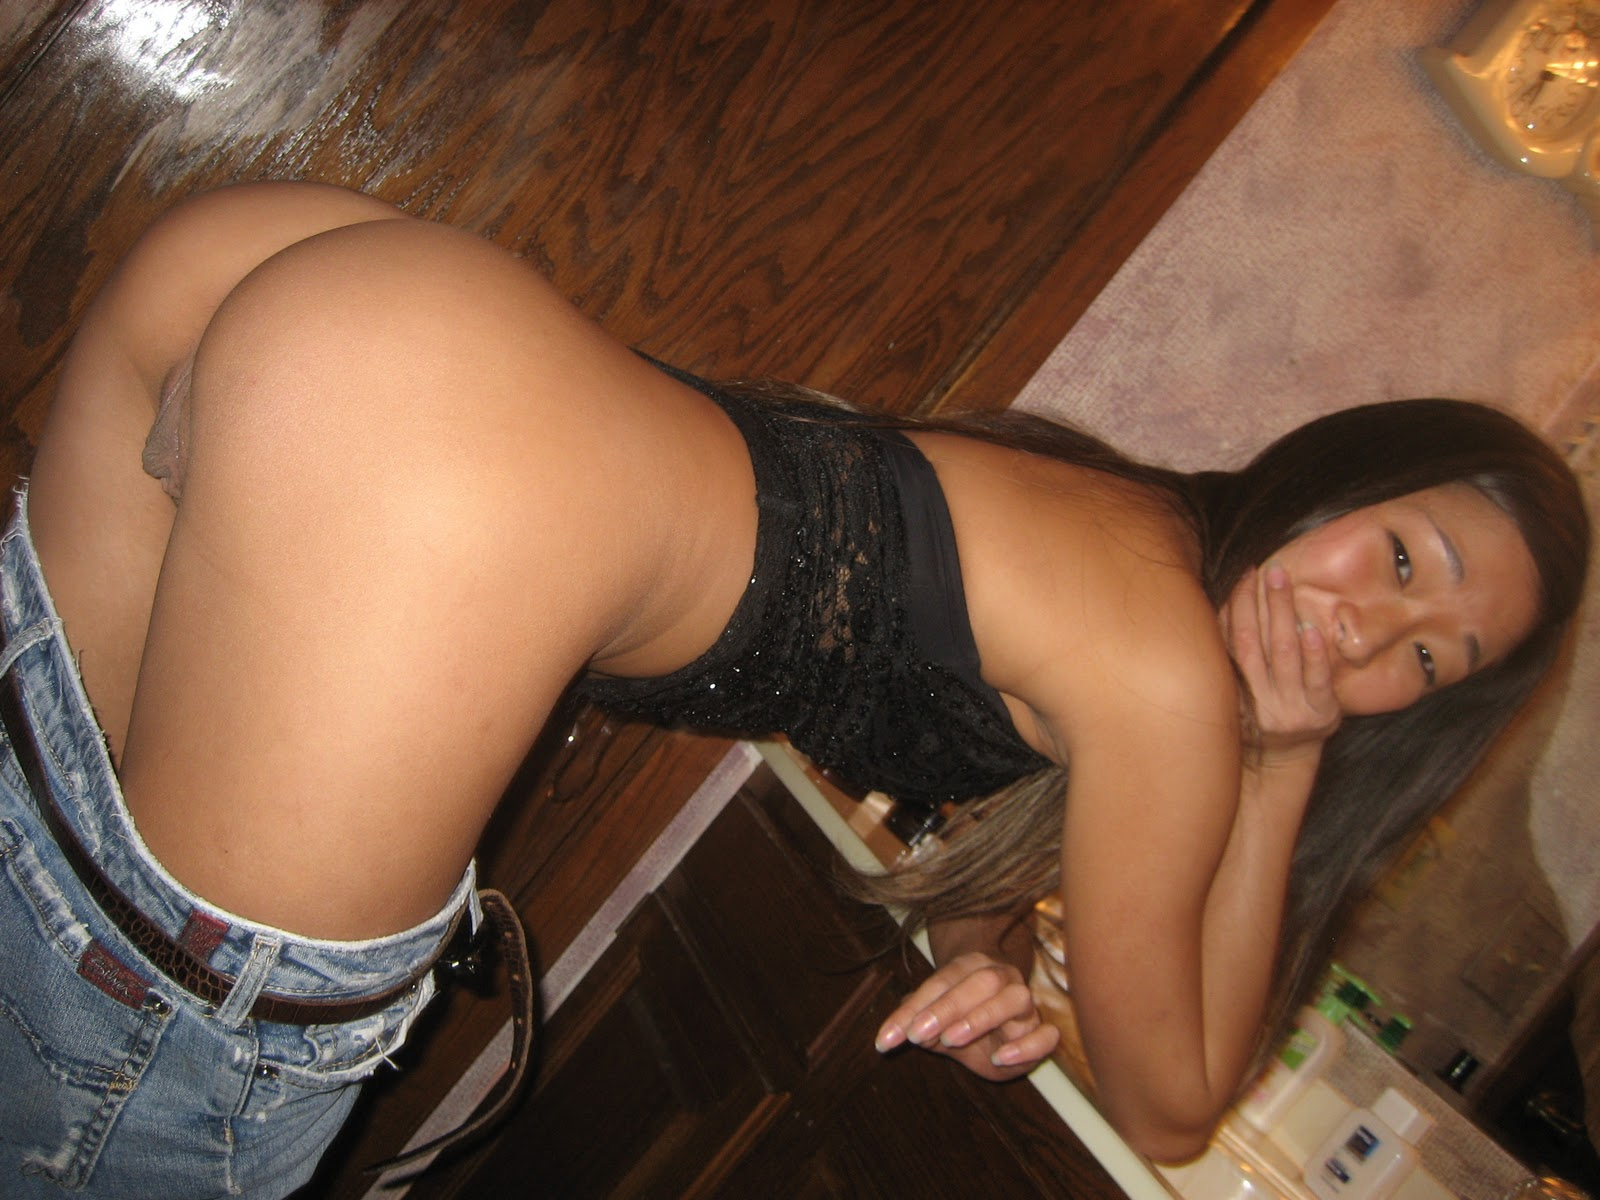 Home ? Asian Girl Asian nude Gallery hots ? Some Confident Young Girls